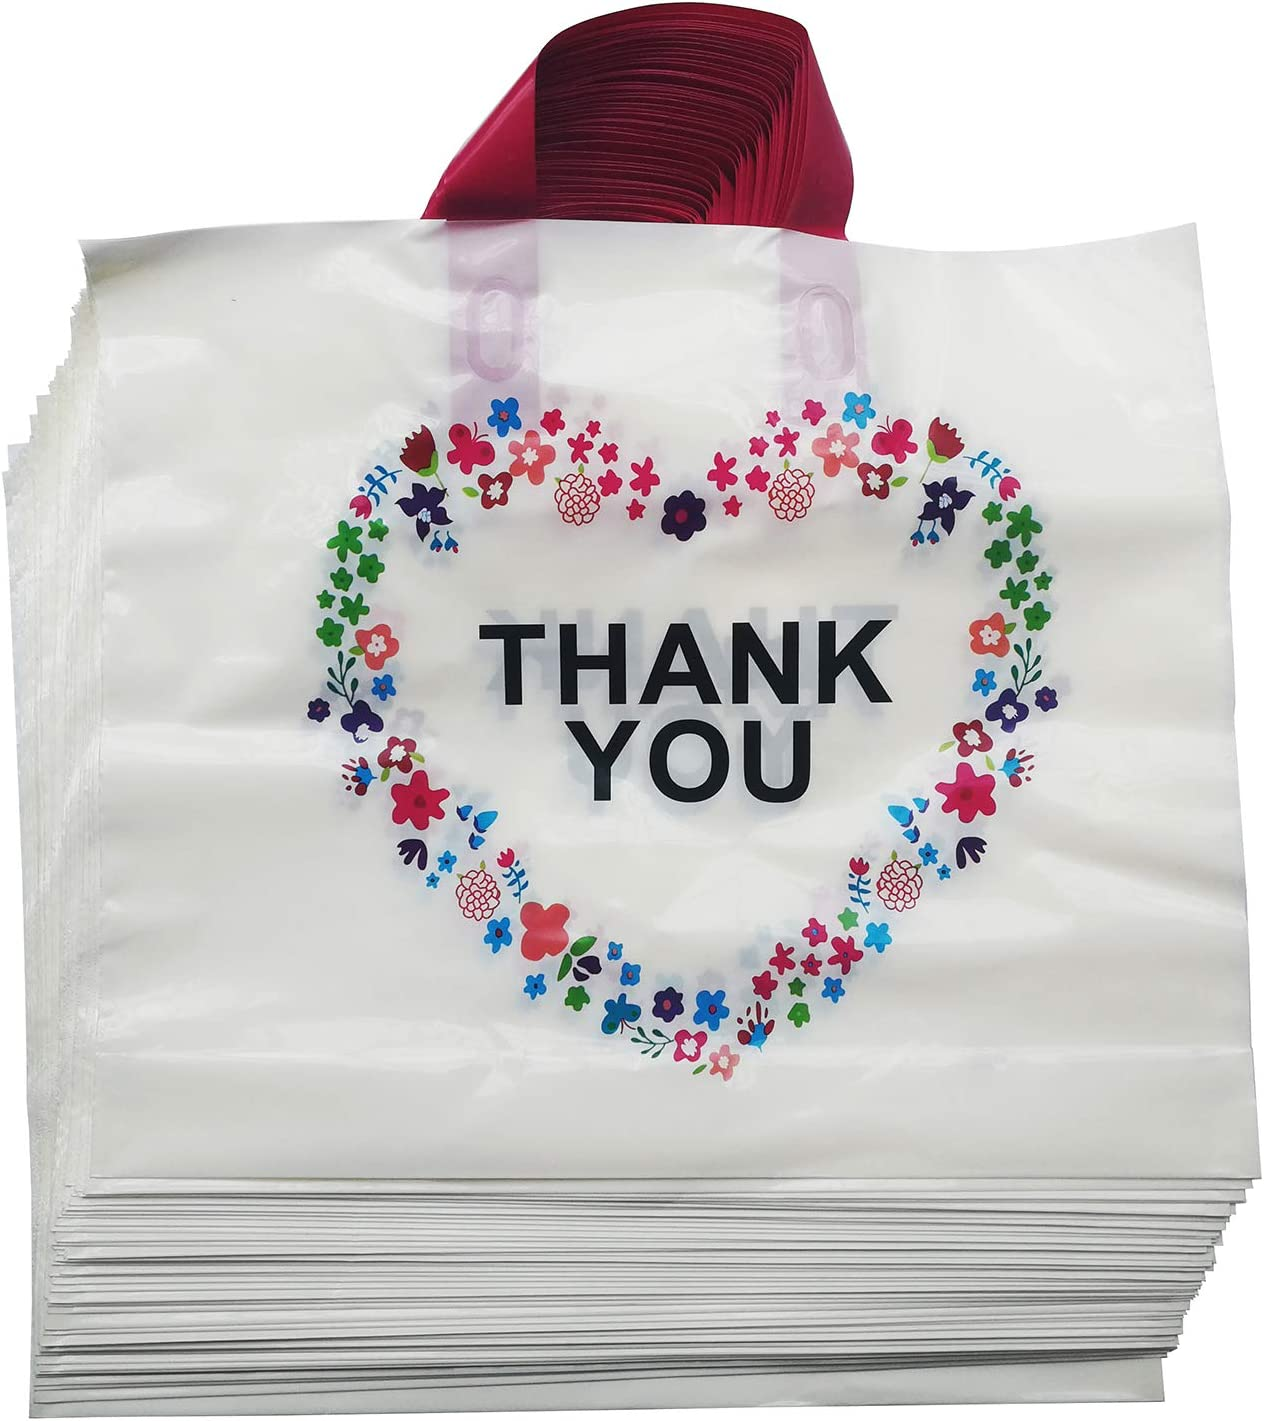 50Pcs Thank You Beige Merchandise Bags with Handles,Plastic Shopping Bags Boutique Gift Bags,14.6x12.6x3.1( 37x32x8cm)5.6Mil